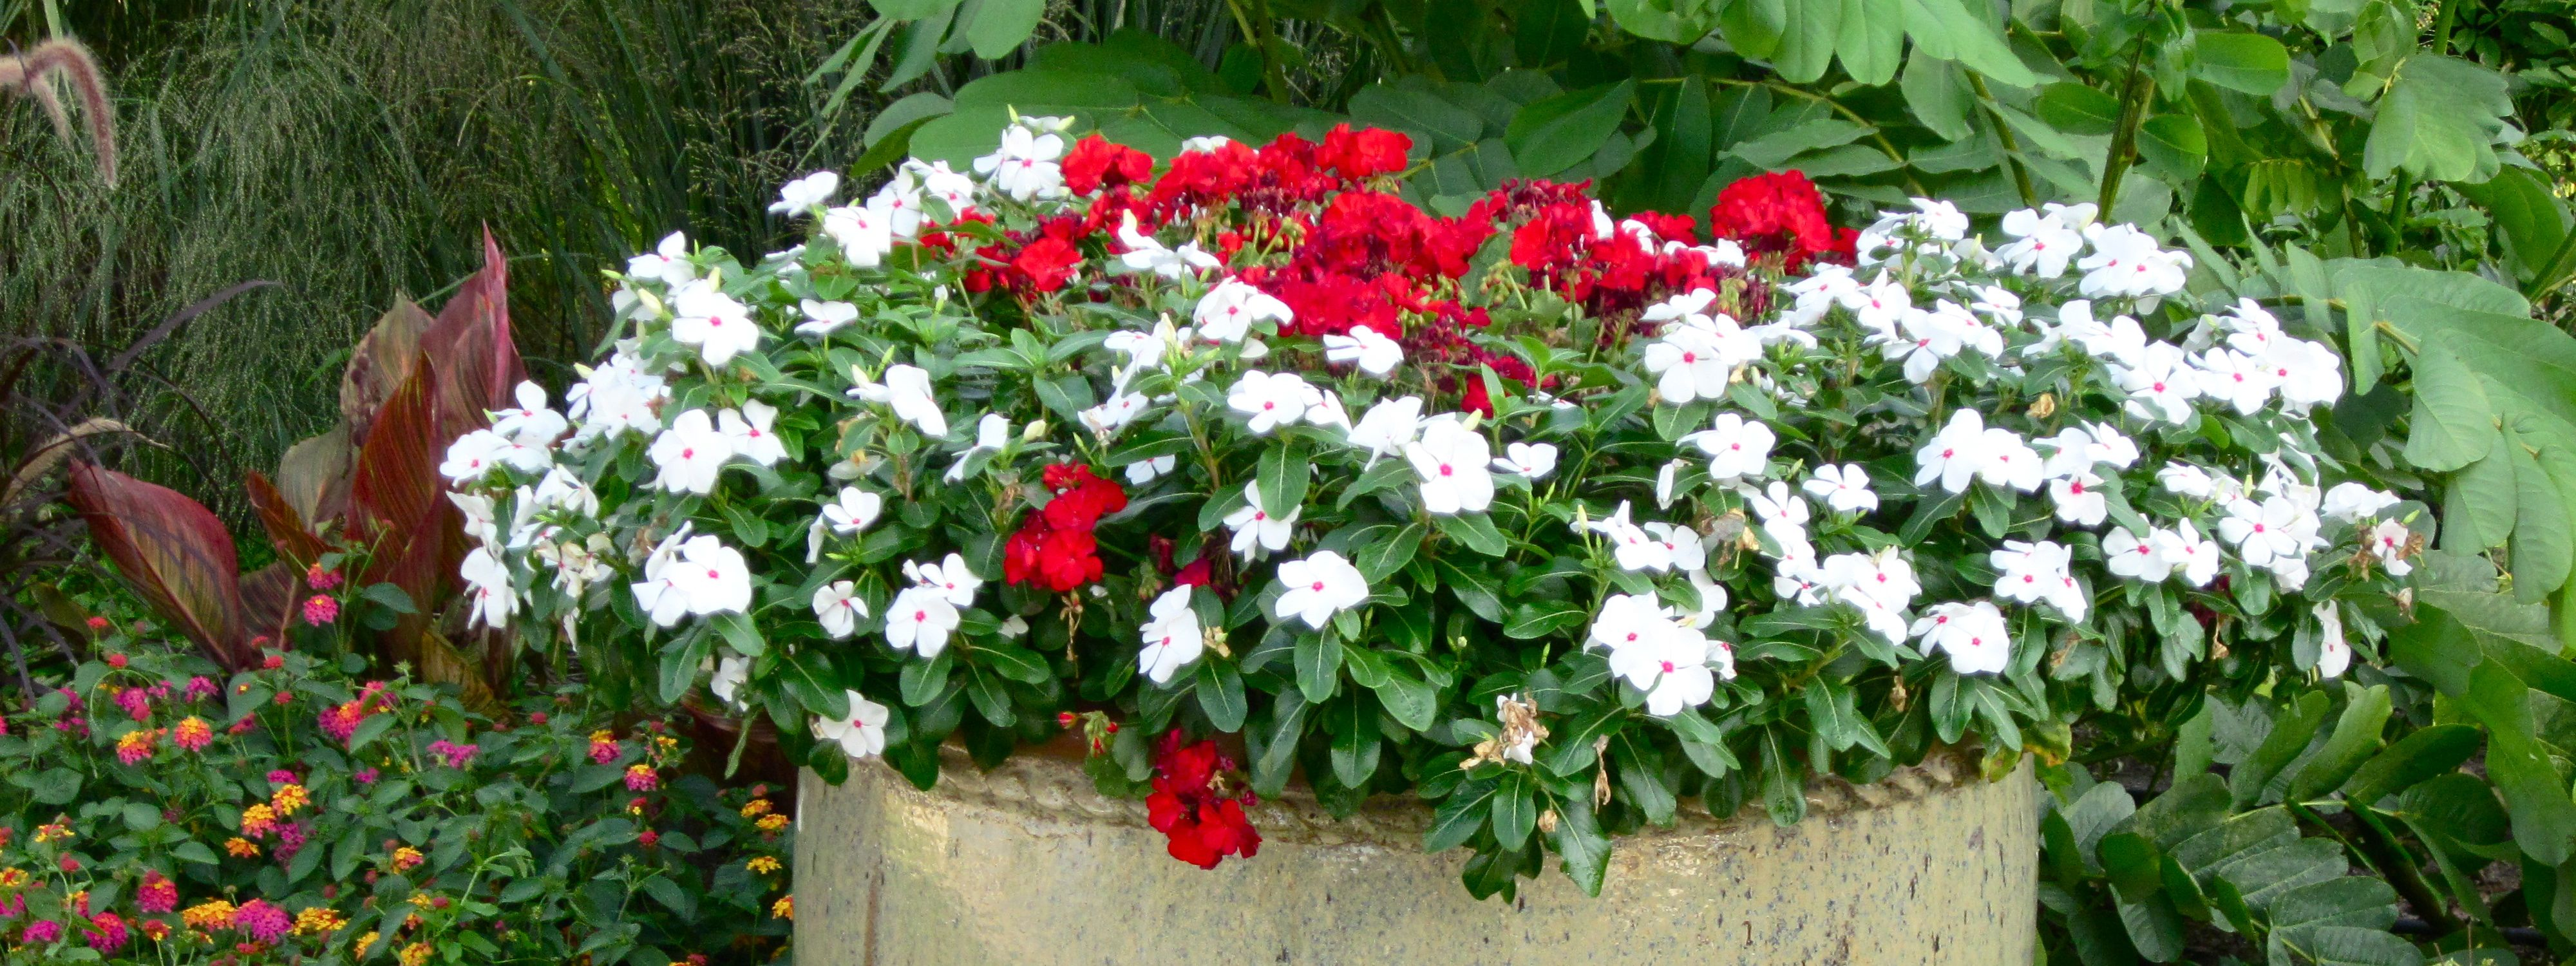 Geraniums and Vinca in large pottery pot